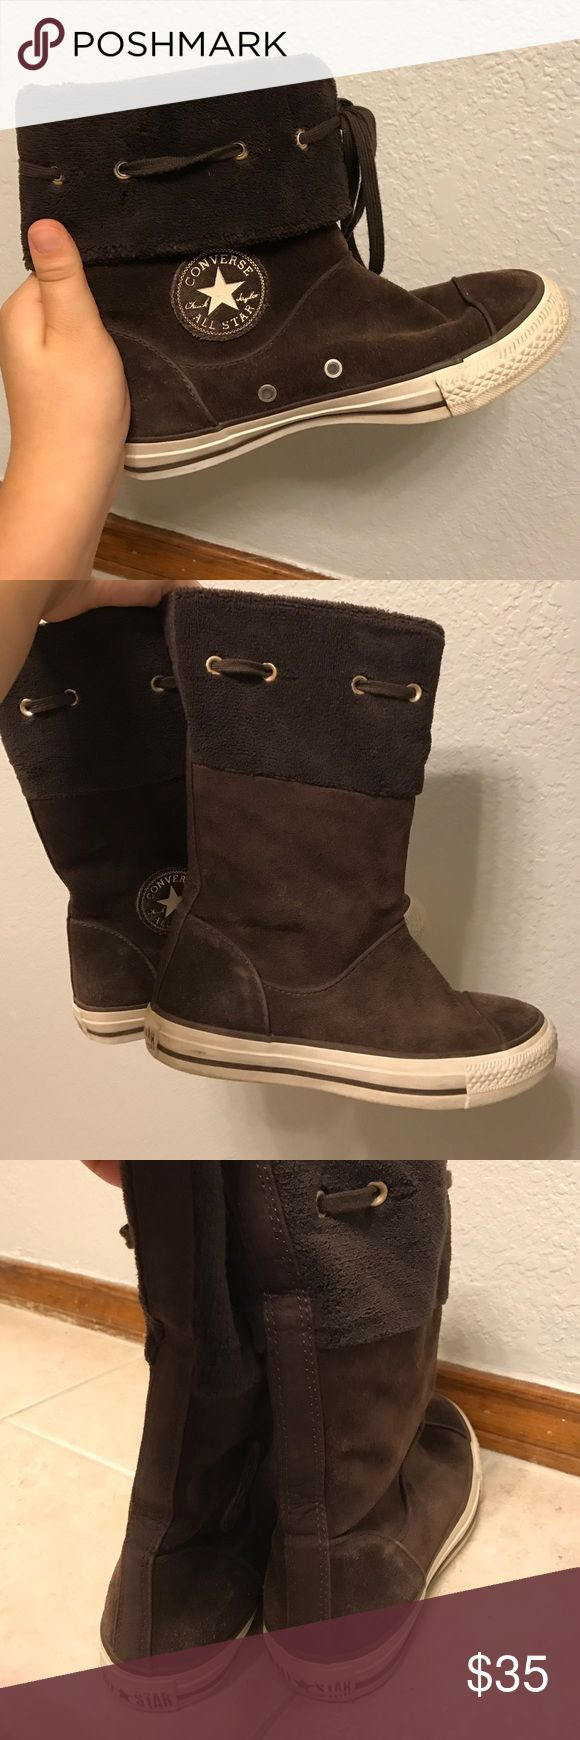 Brown Converse Boots Brown leather Chuck Taylor Converse boots. Worn a couple of times, small signs of wear in heels. Can be worn tall or folded down. ACCEPTING OFFERS! Converse Shoes Ankle Boots & Booties